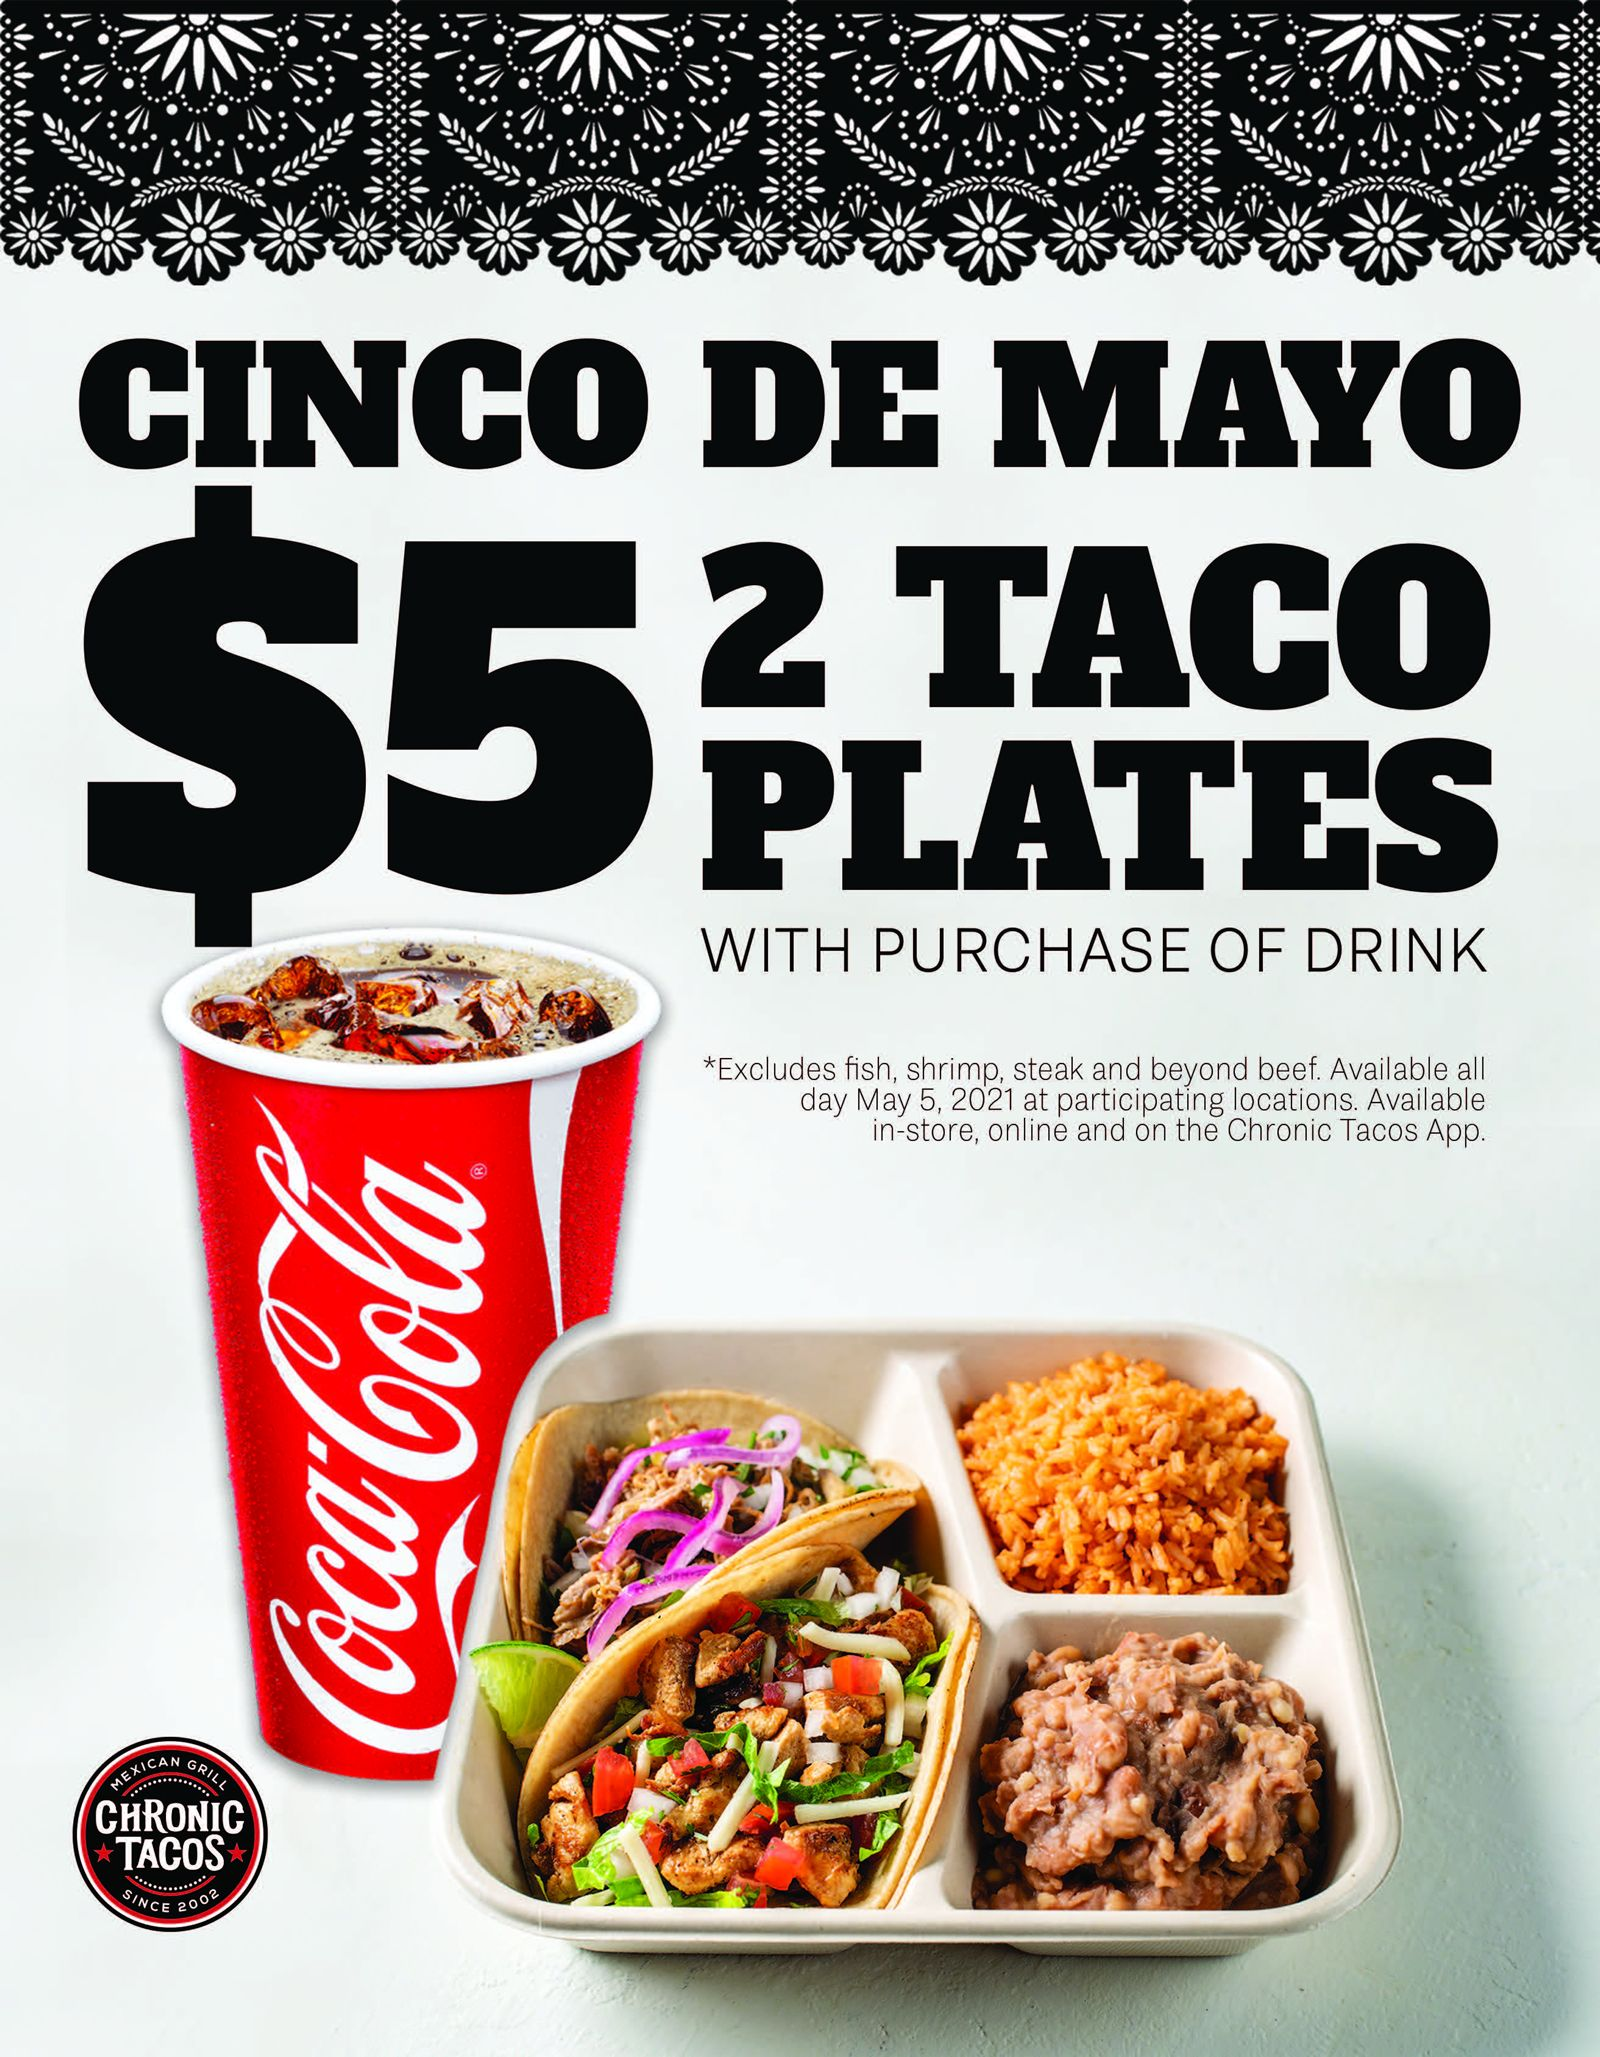 Chronic Tacos Offers $5 Taco Plates to Celebrate Cinco de Mayo